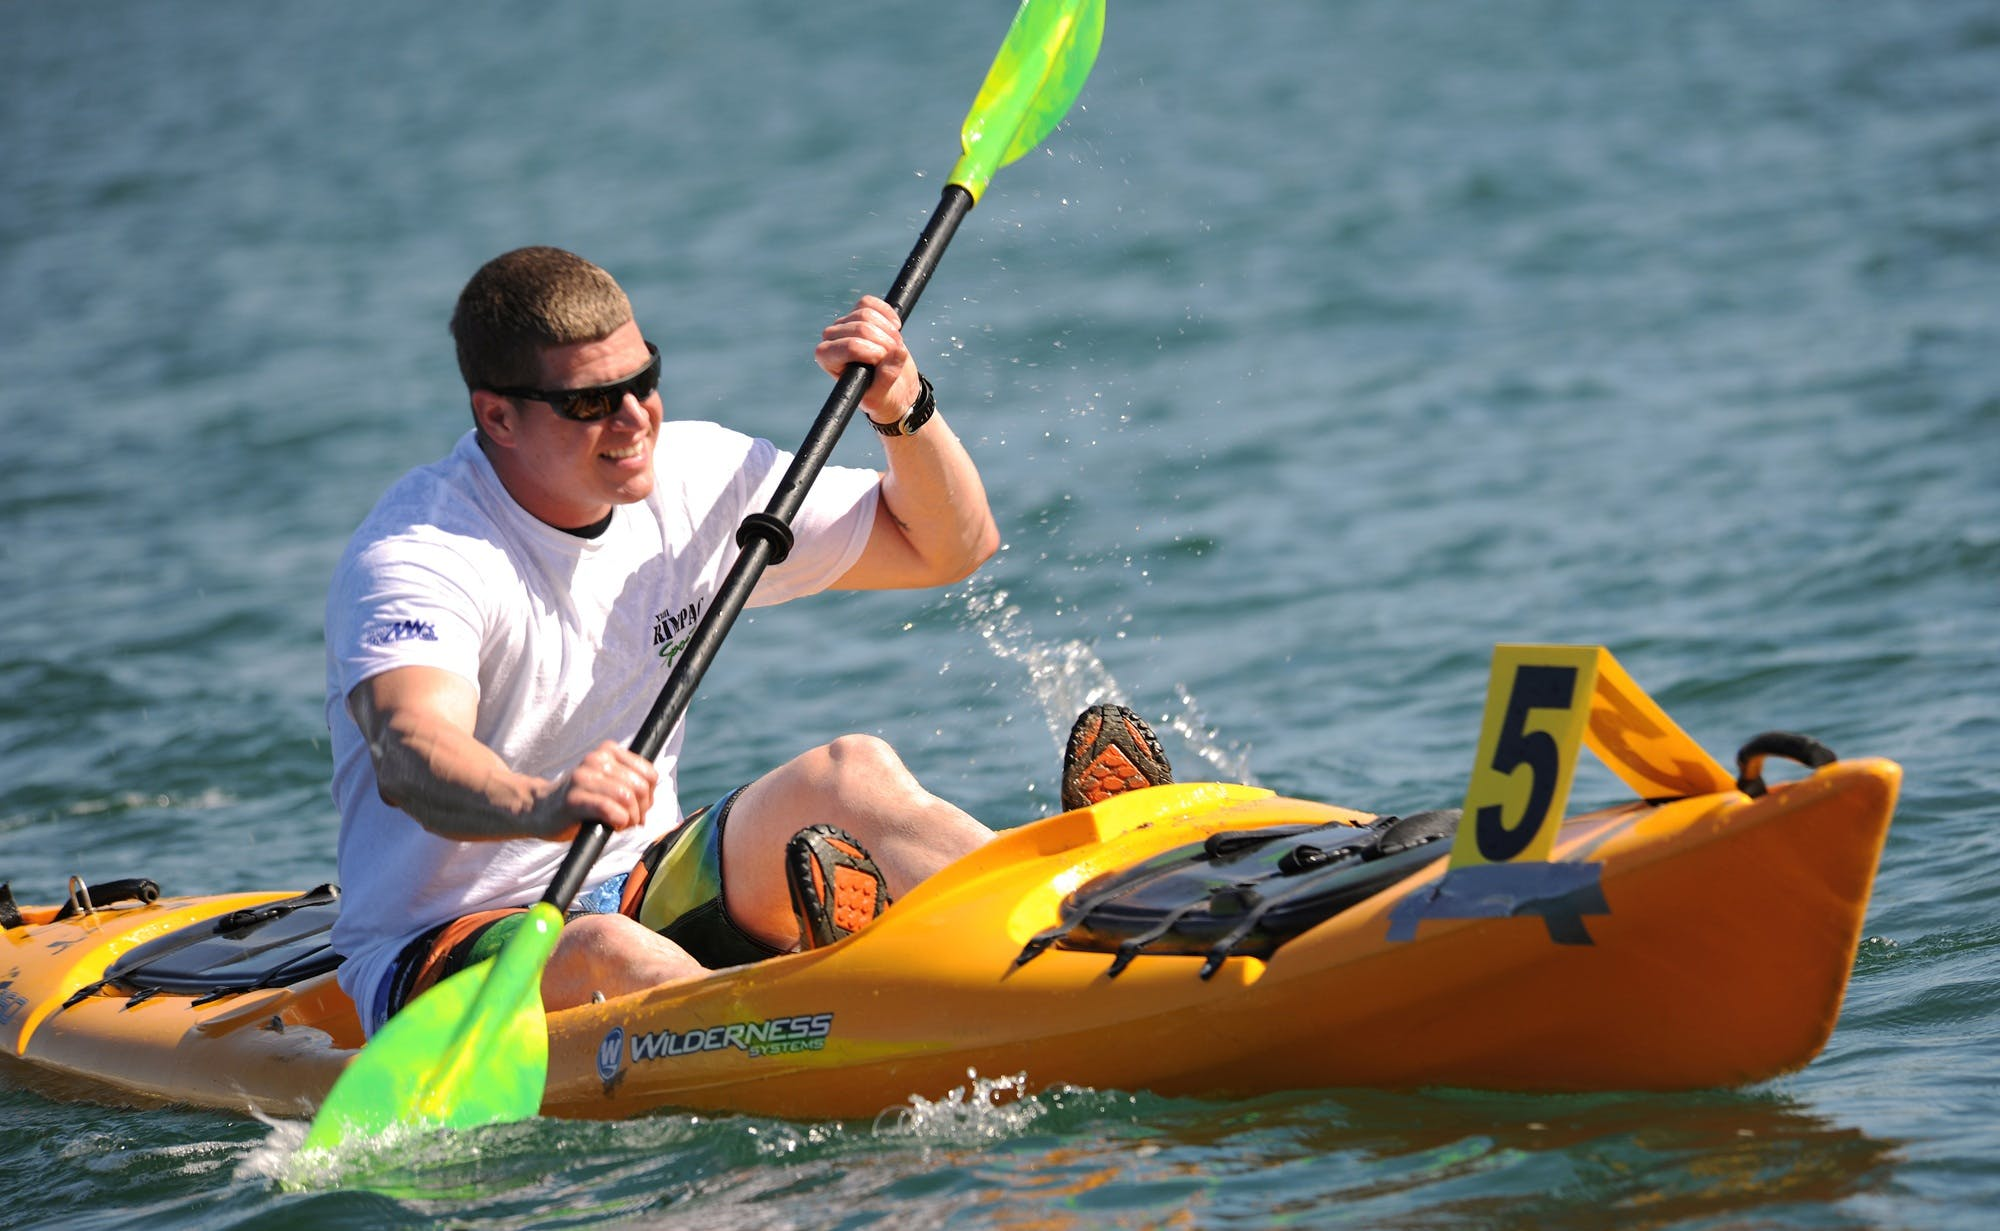 Smiling Man in White Crew Neck T Shirt Wearing Sunglasses Paddling on Yellow Kayak during Daytime